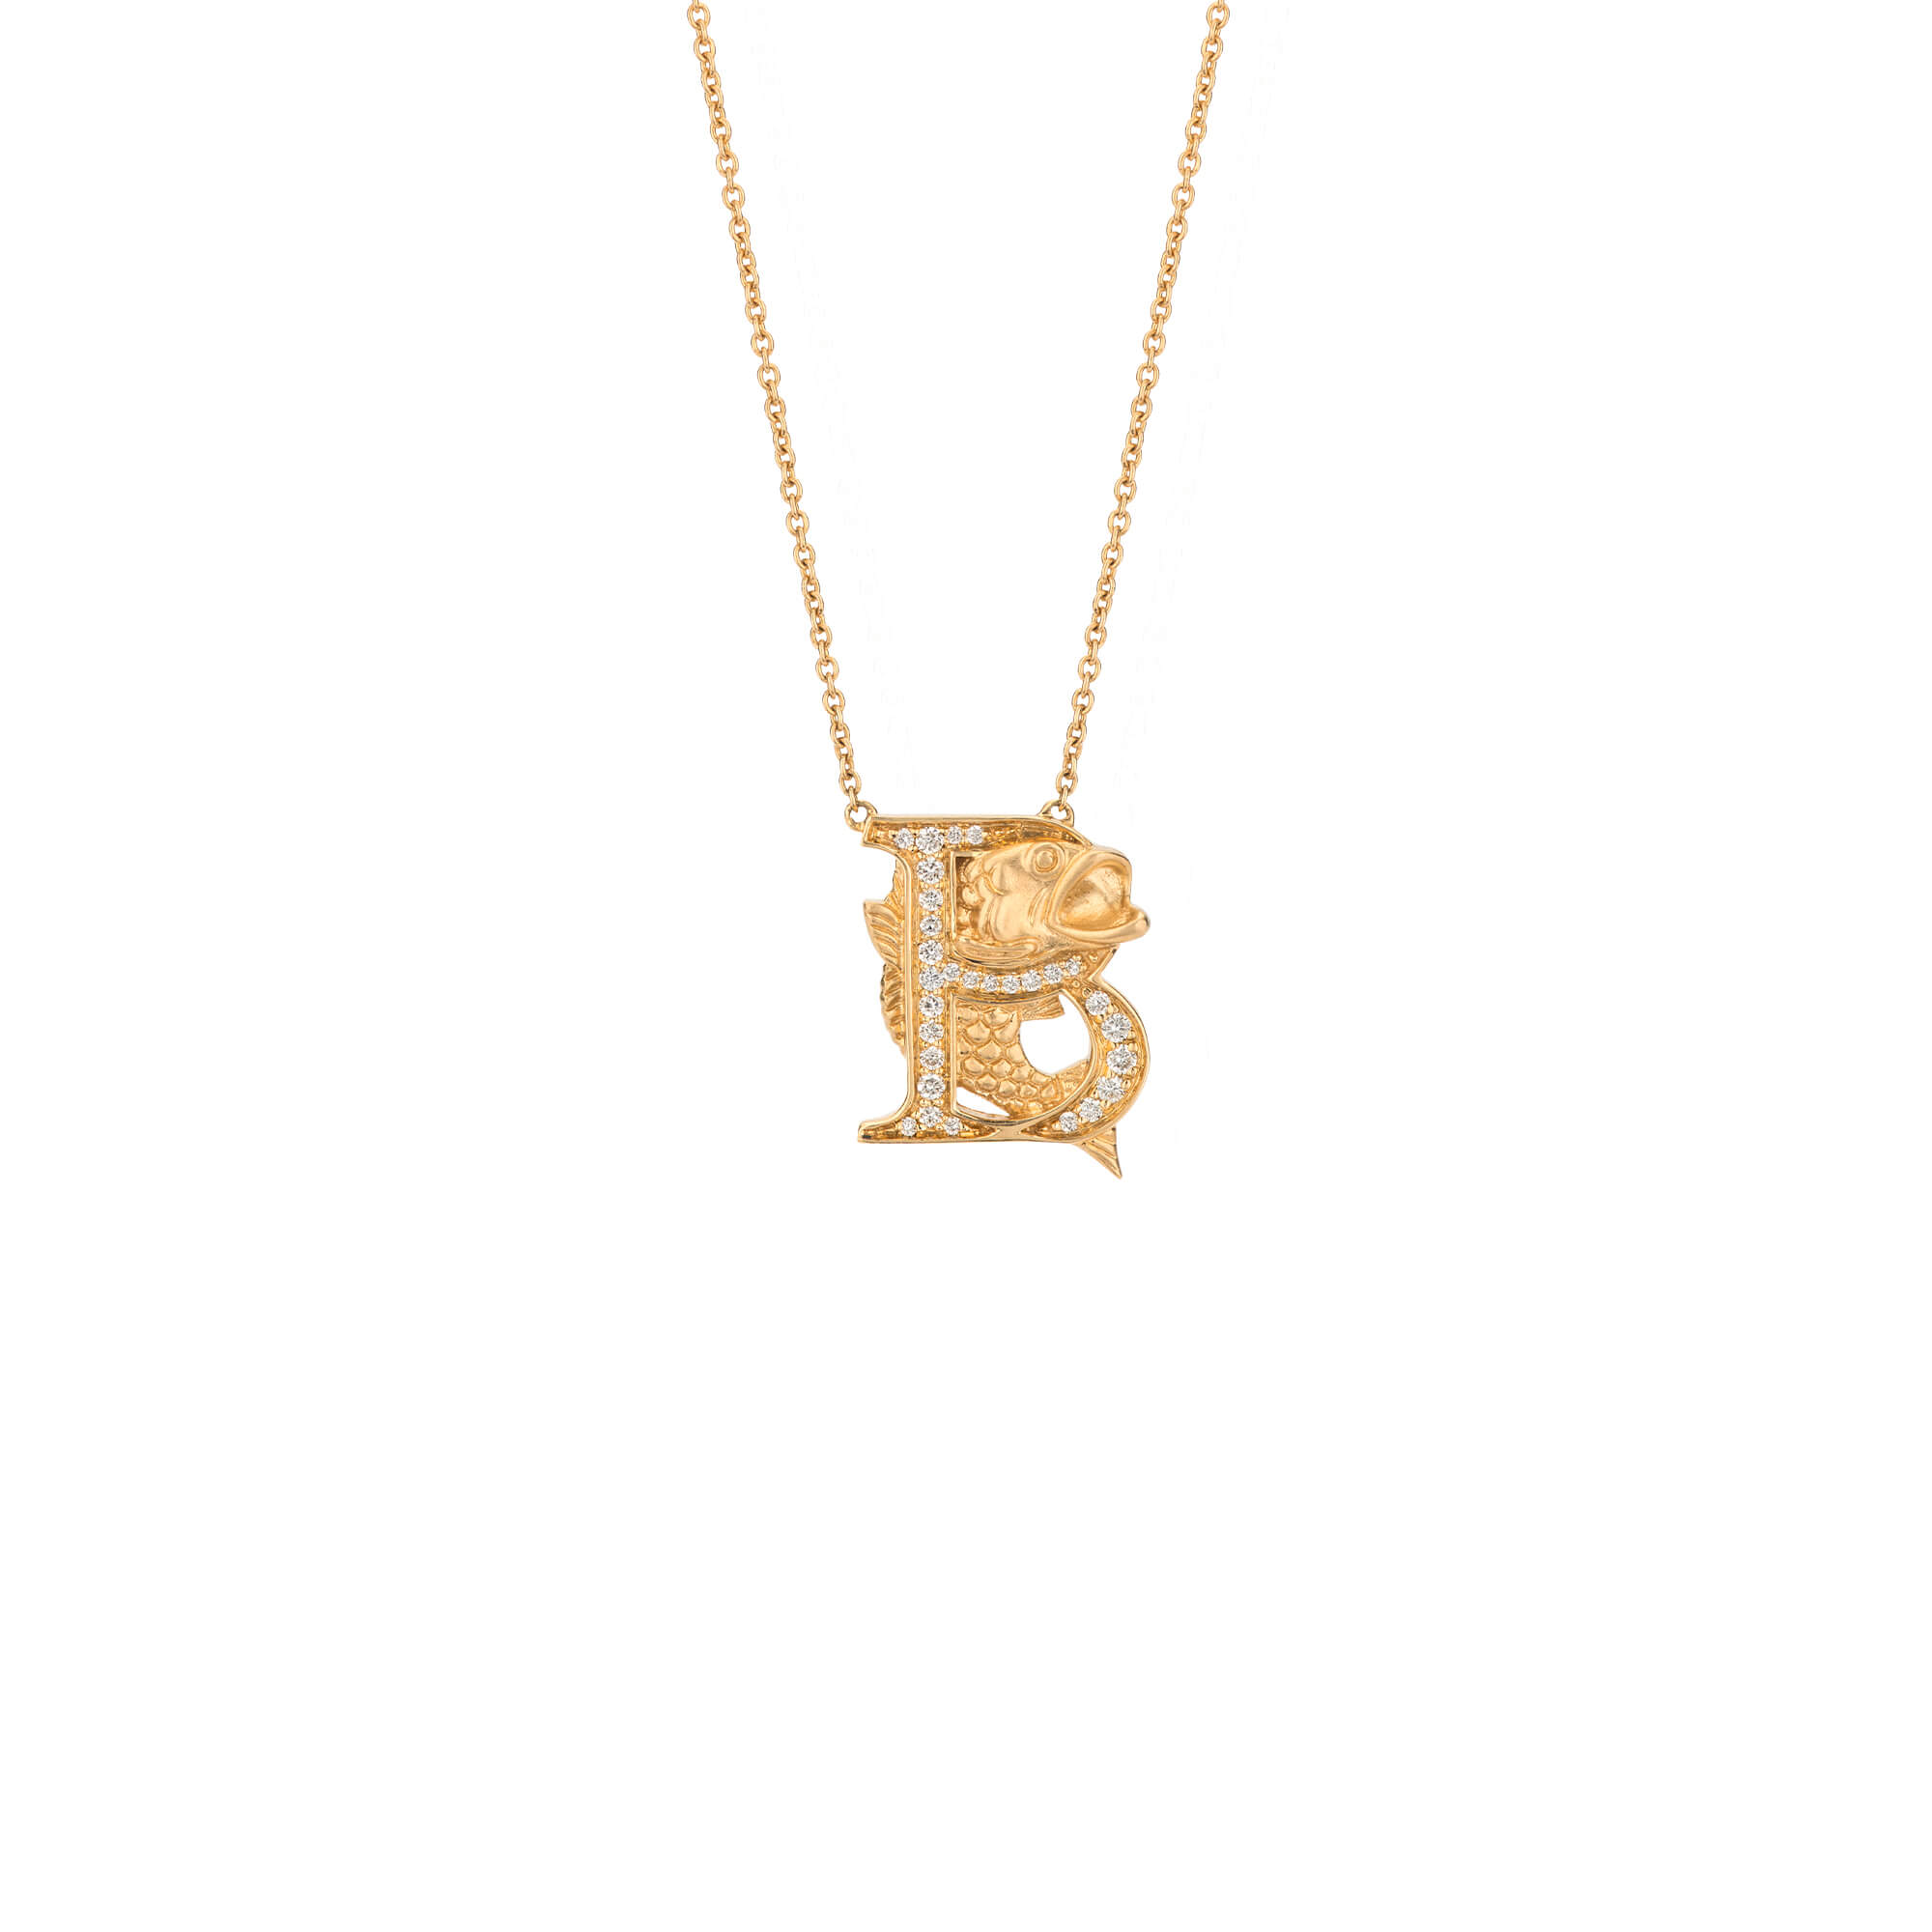 B is for Bass Gold Necklace | Fish Tales